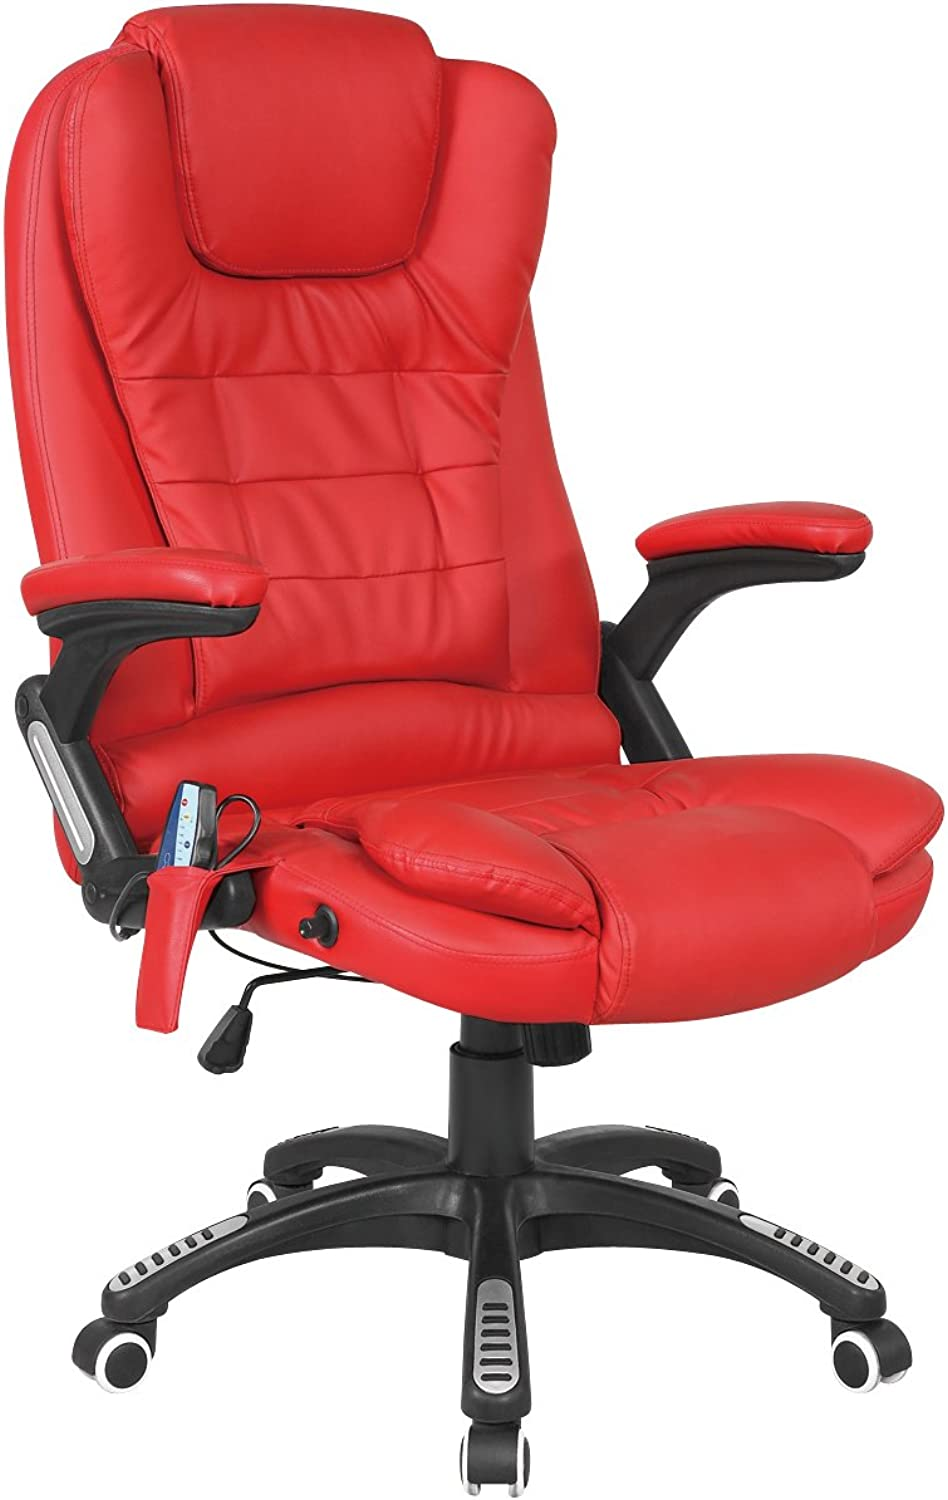 WestWood Luxury Leather 6 Point Massage Office Computer Chair Reclining High Back Red New